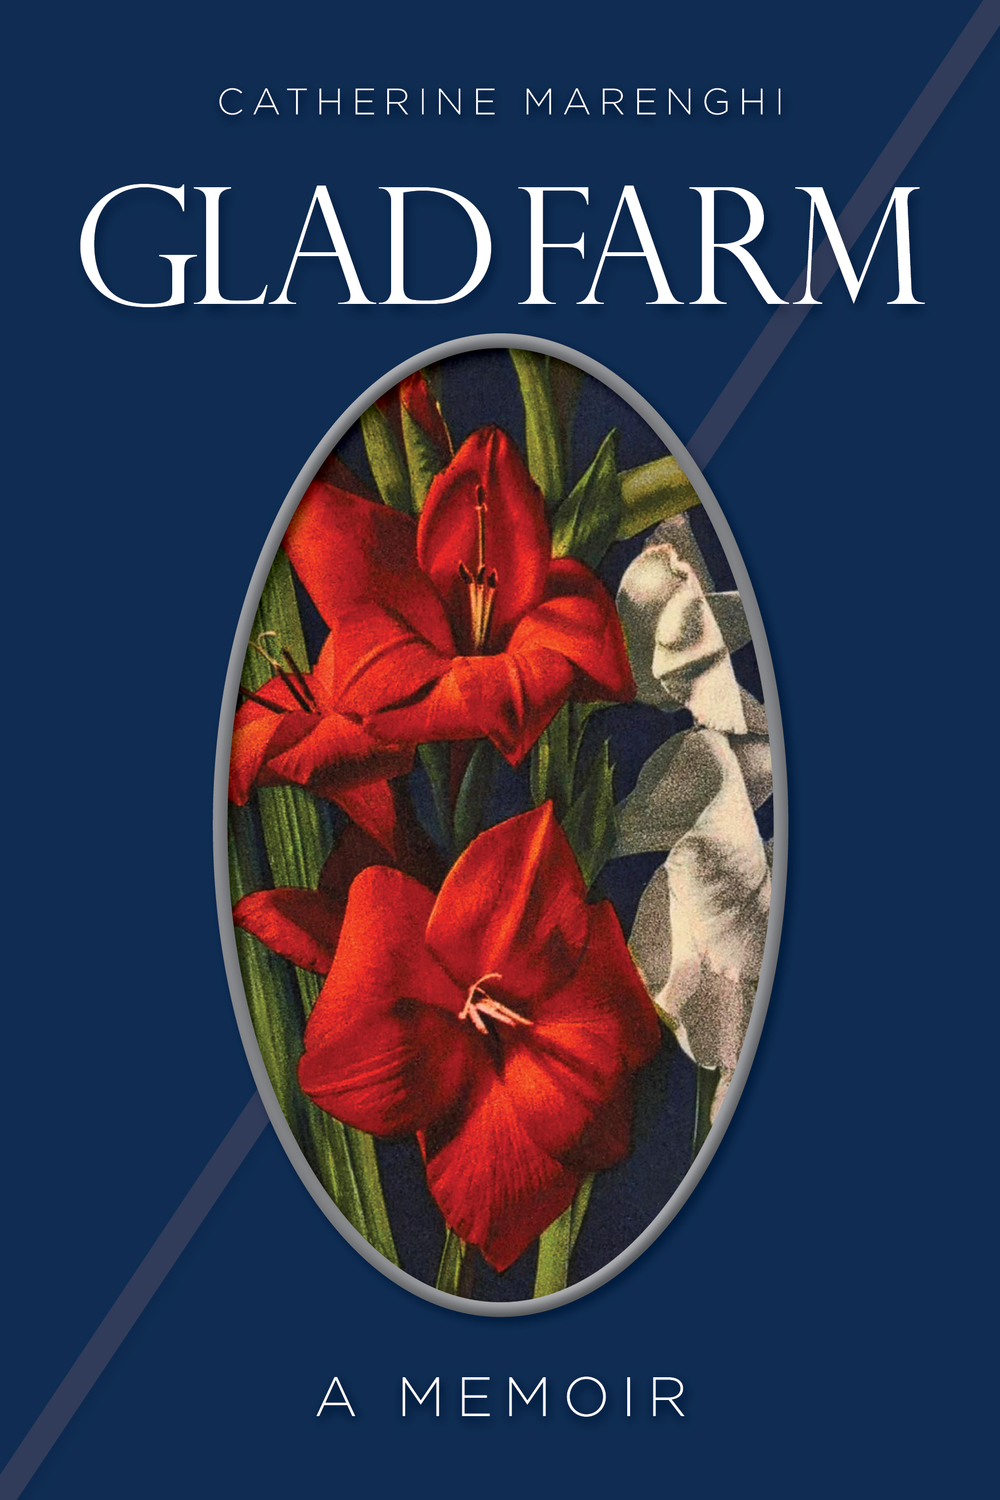 GLAD FARM: revised cover concept #2